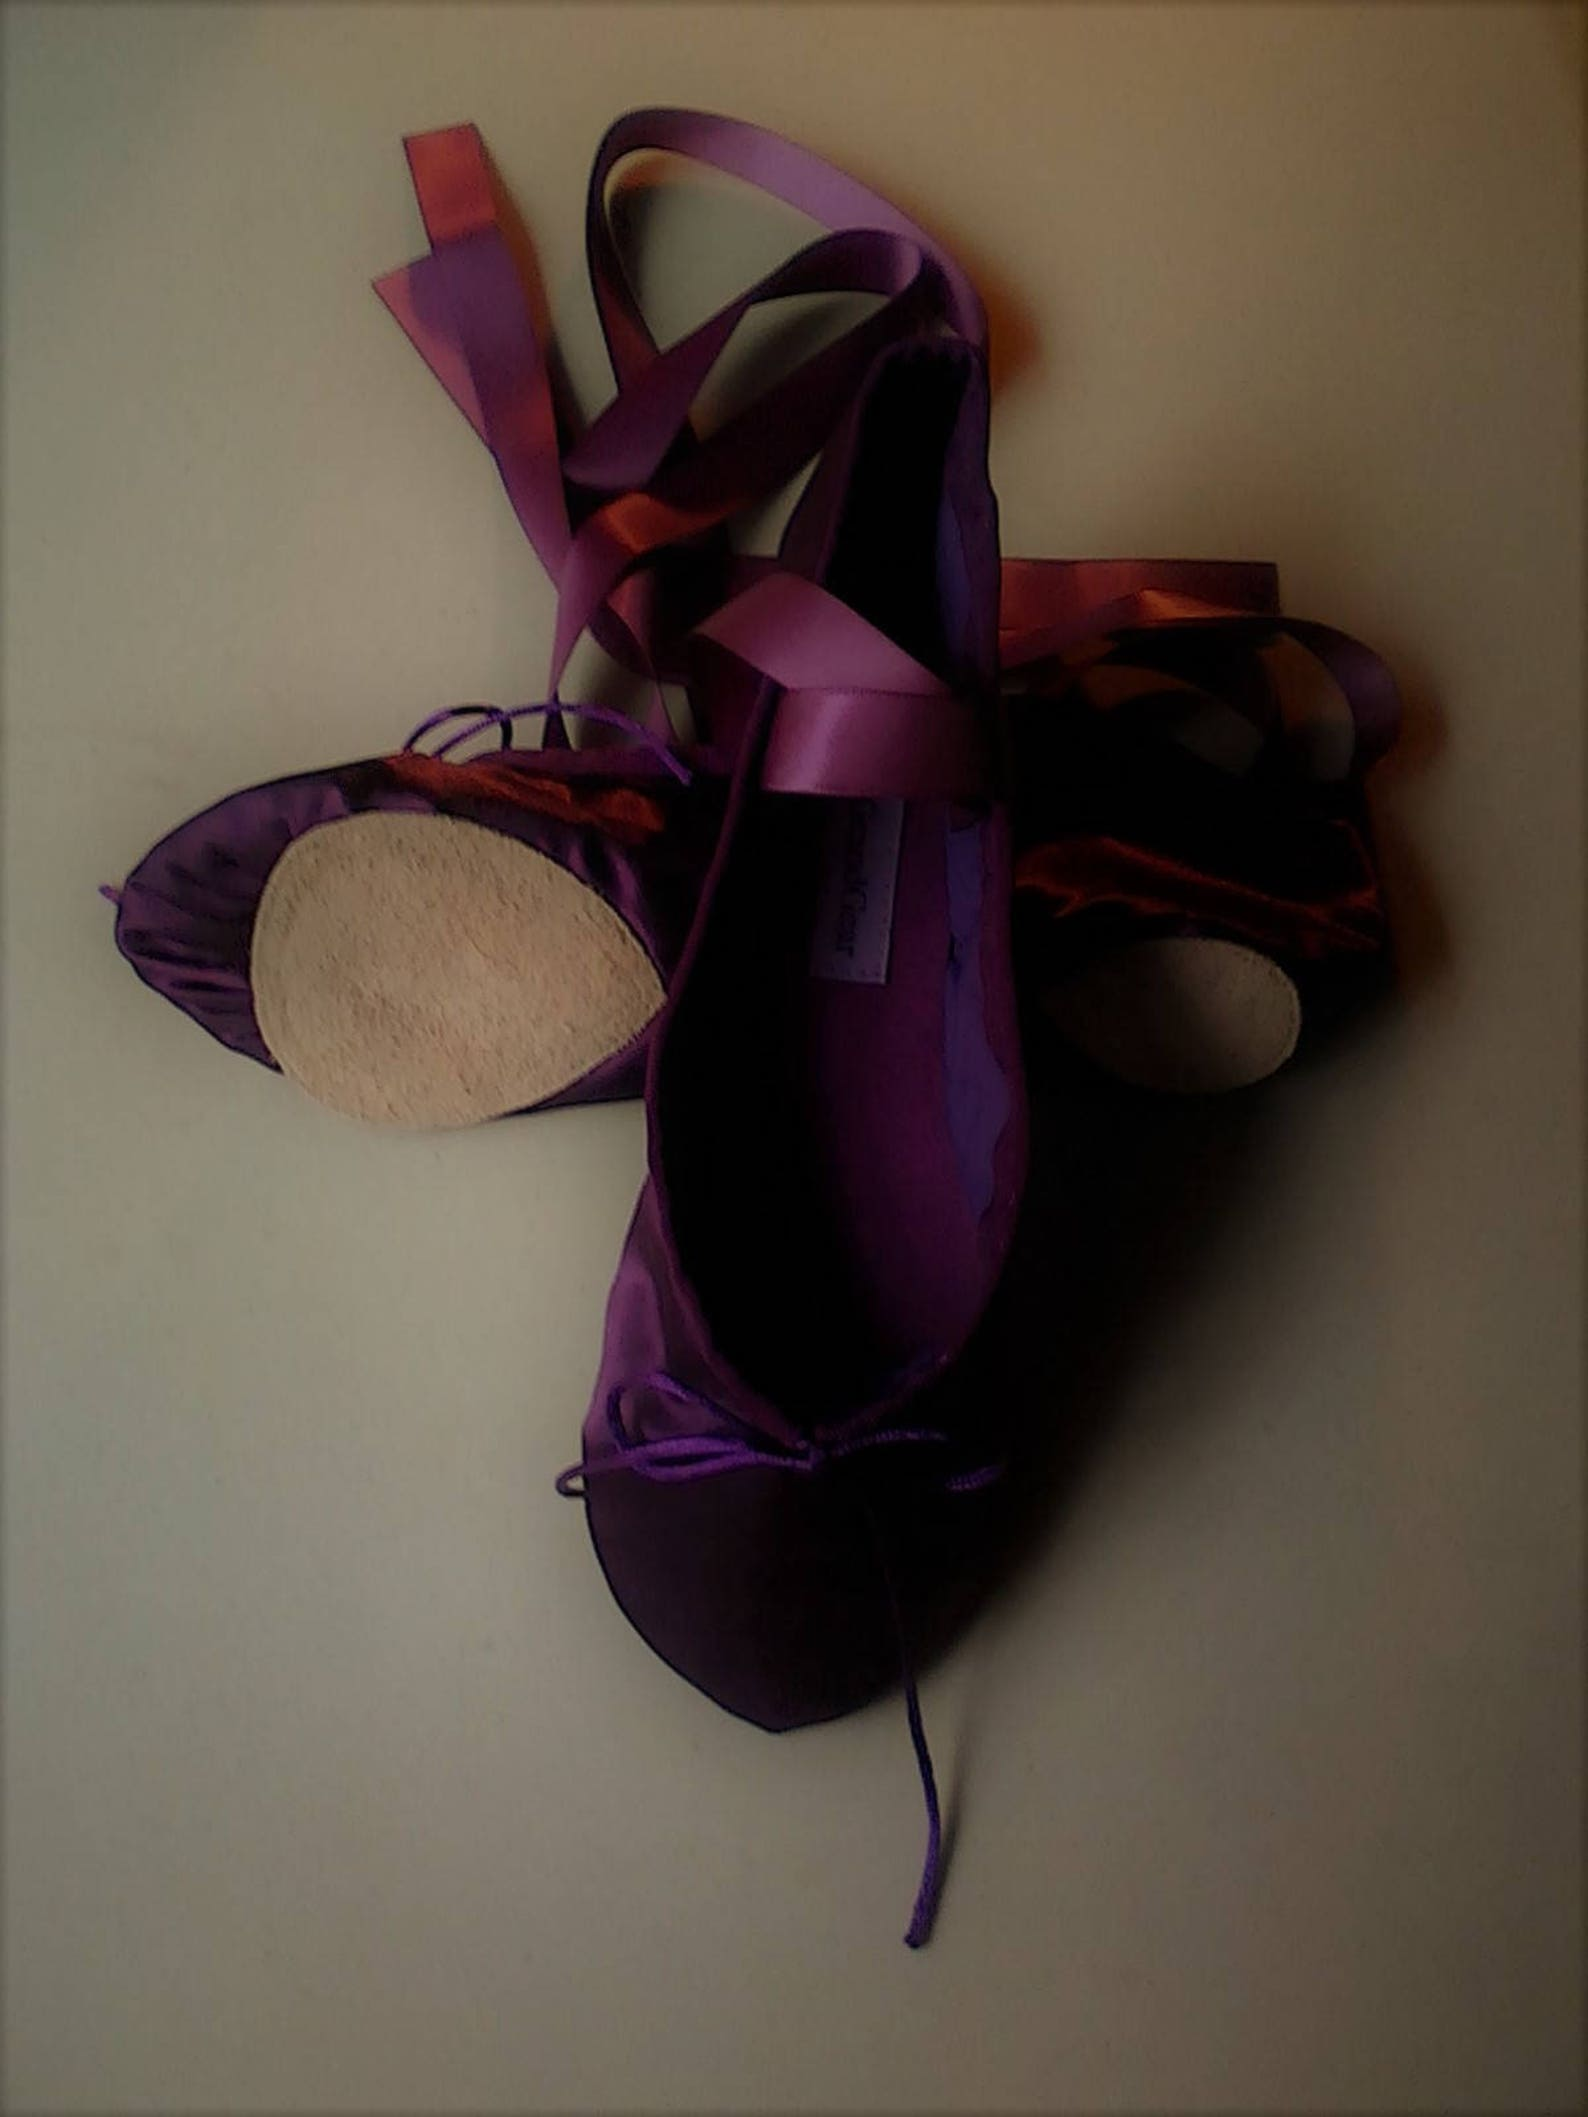 dark plum purple satin ballet shoes - split sole (or full sole) - adult sizes